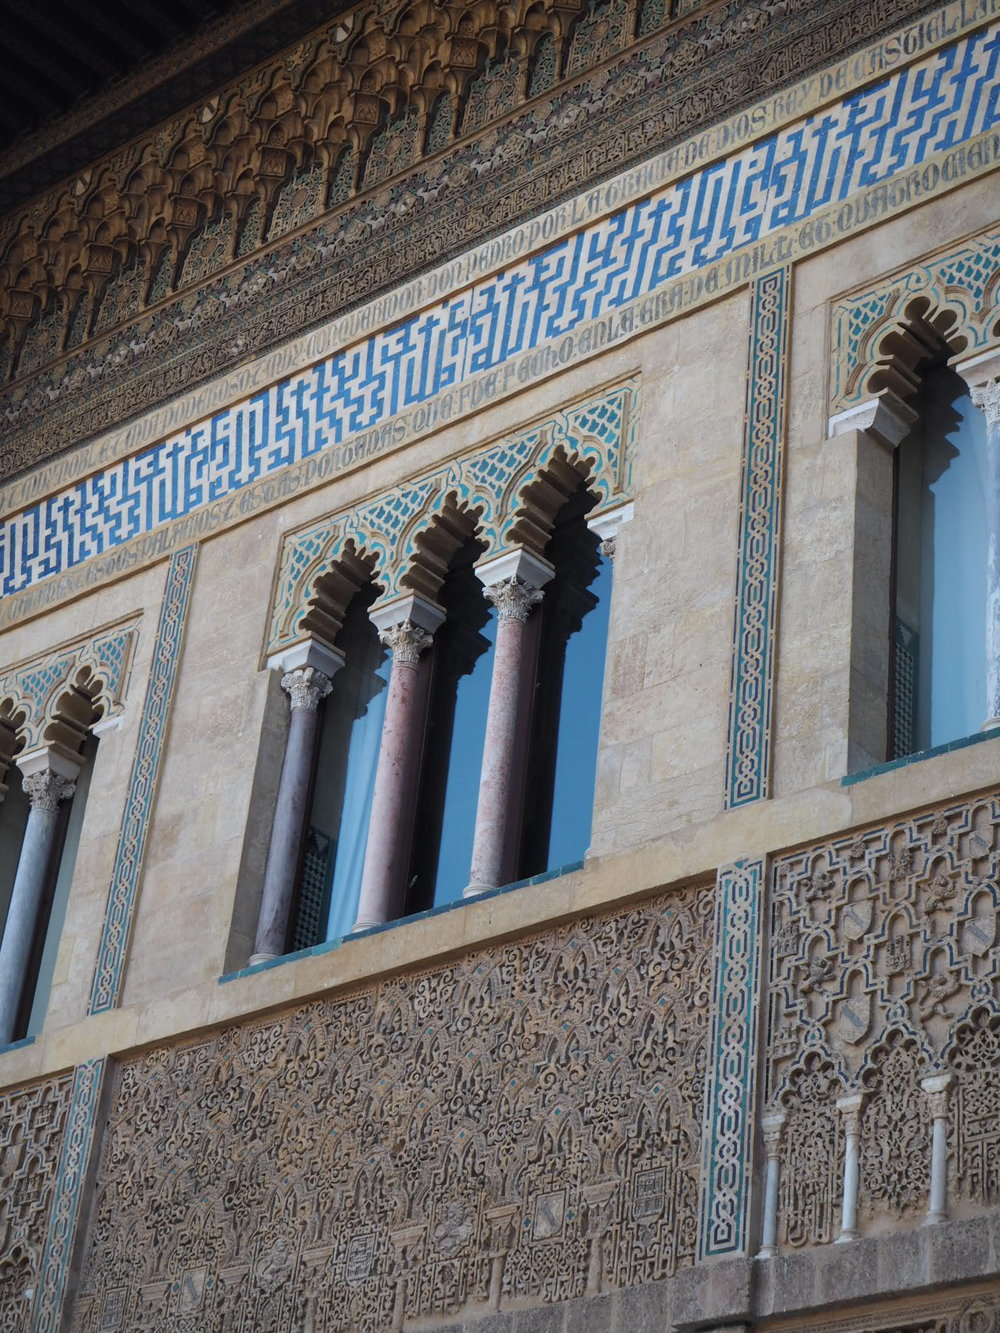 Spanish rulers liked the style of the former residents so much that they employed muslim artisans to build a palace on the site of the historic Alcazar, the mix of Islamic and western style, displayed above, now known as mudejar (from Arabic 'allowed to remain')